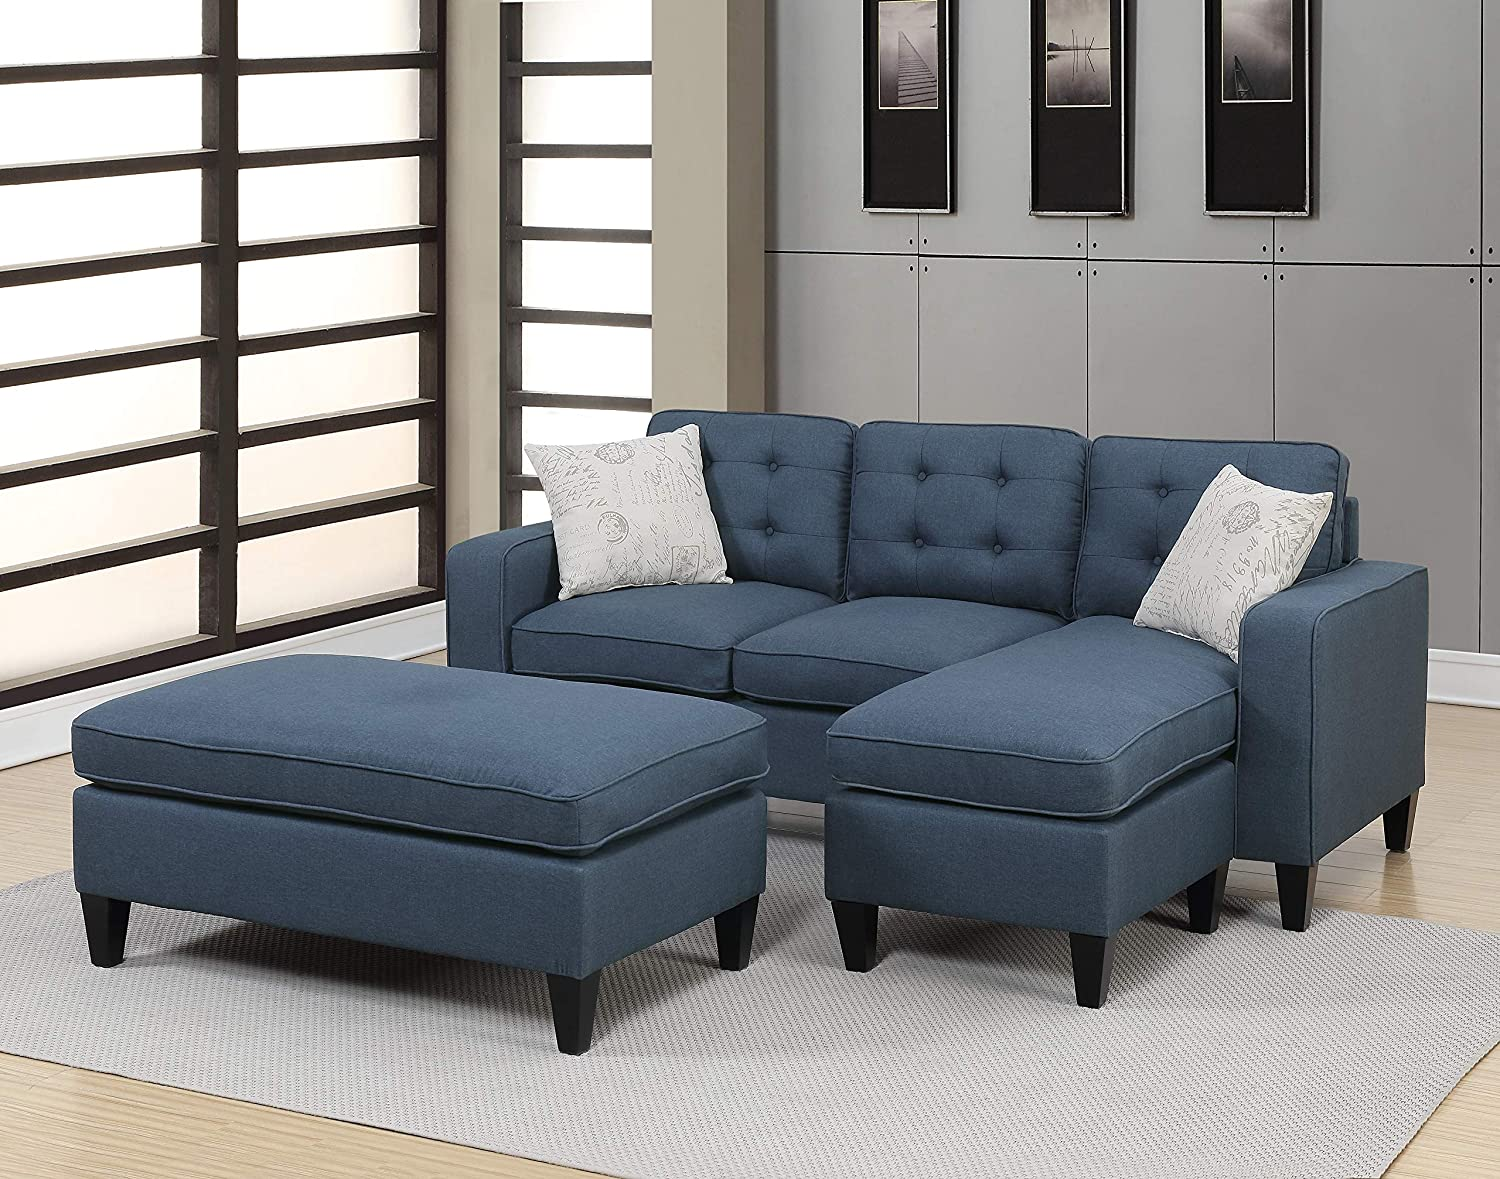 Amazon.com: Living Room Furniture Reversible sectional Sofa ...